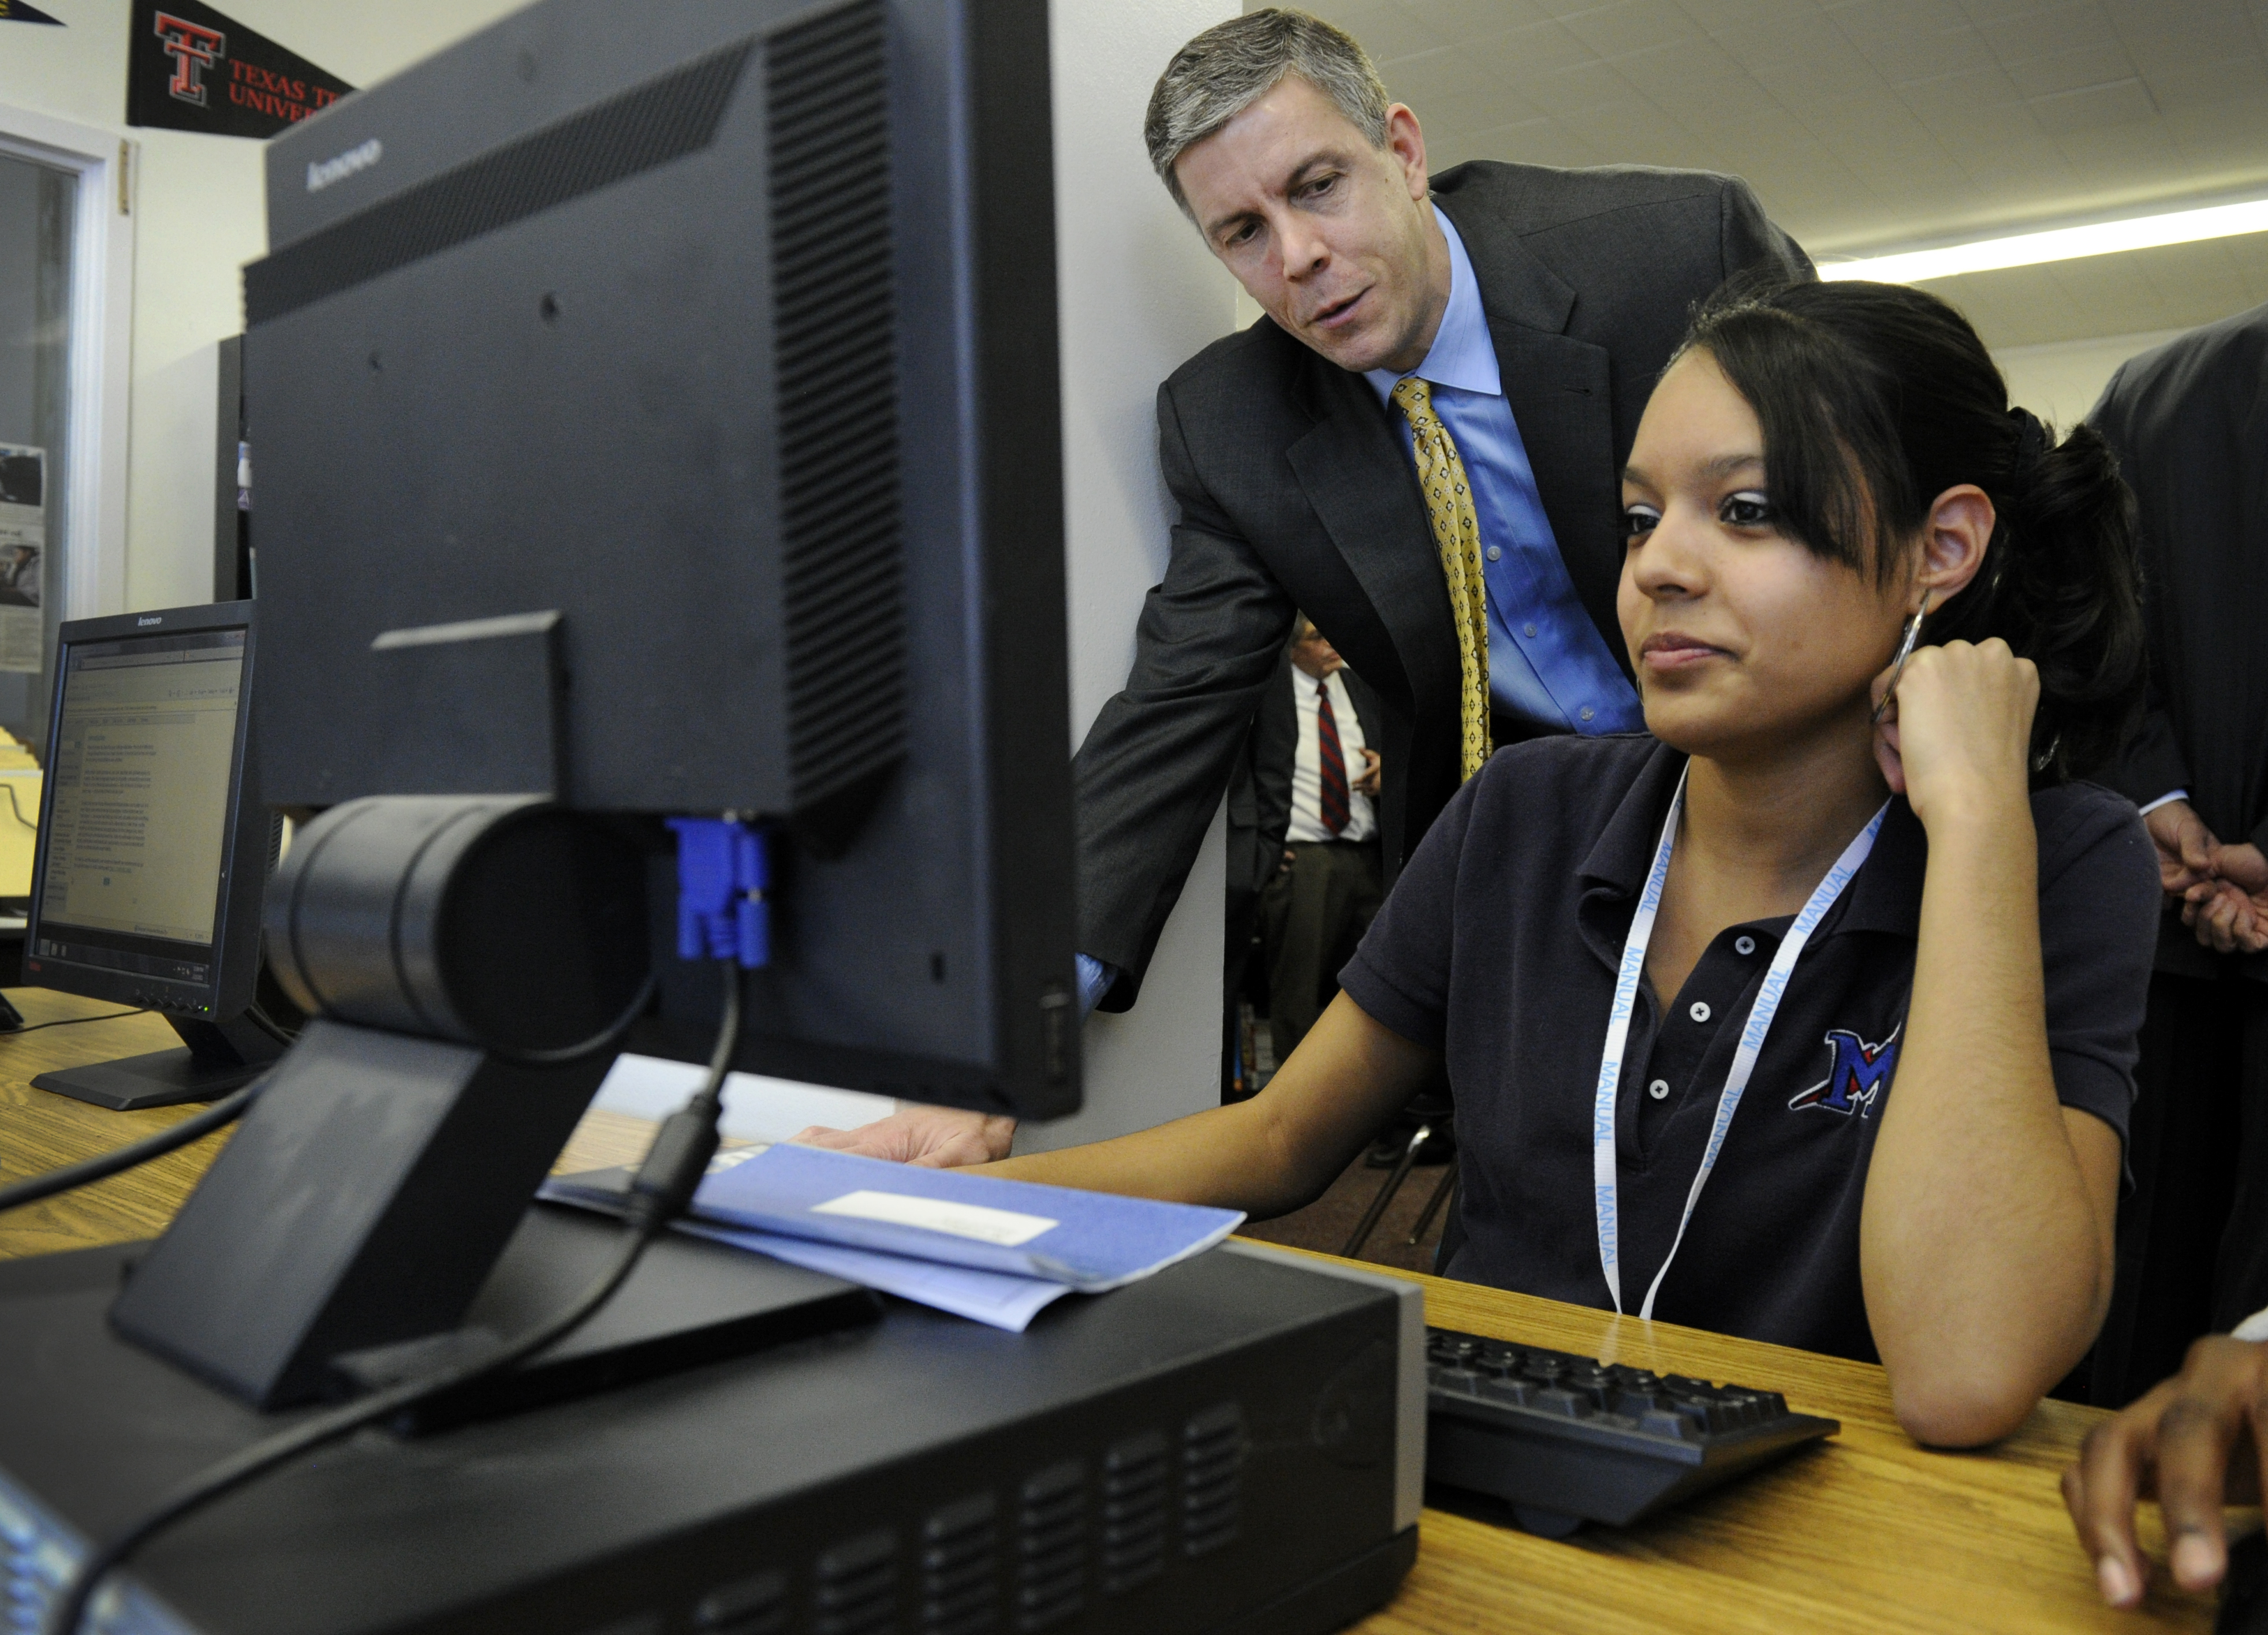 DENVER, CO--U.S. Secretary of Education, Arne Duncan, left, talks with Manual High School student, Karen Santoyo, 18-years-old, as she works on the computer at the Futures Center looking at colleges and financial aid Tuesday morning. Duncan held a communi